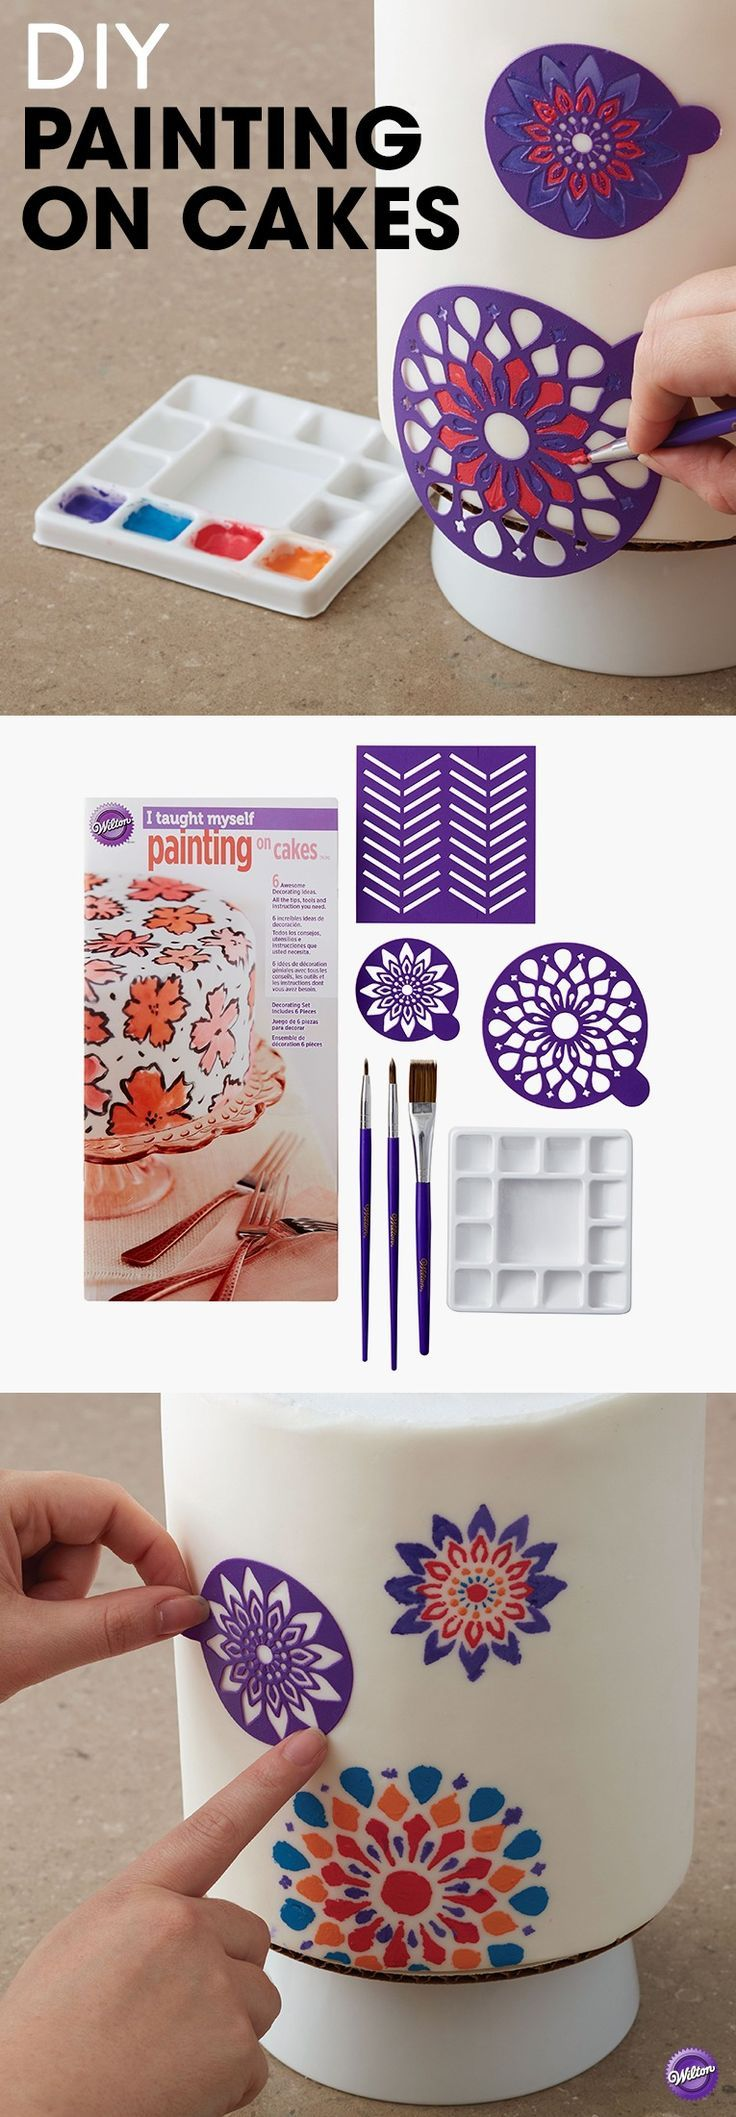 DIY Painting on Cakes - Love the artistry of a beautifully decorated cake? Learn how to do it yourself with this step-by-step guide on painting cakes. It gives you complete instructions along with color photos to teach you how to use decorating brushes, stencils and icing colors to create unique designs on cakes and cookies.